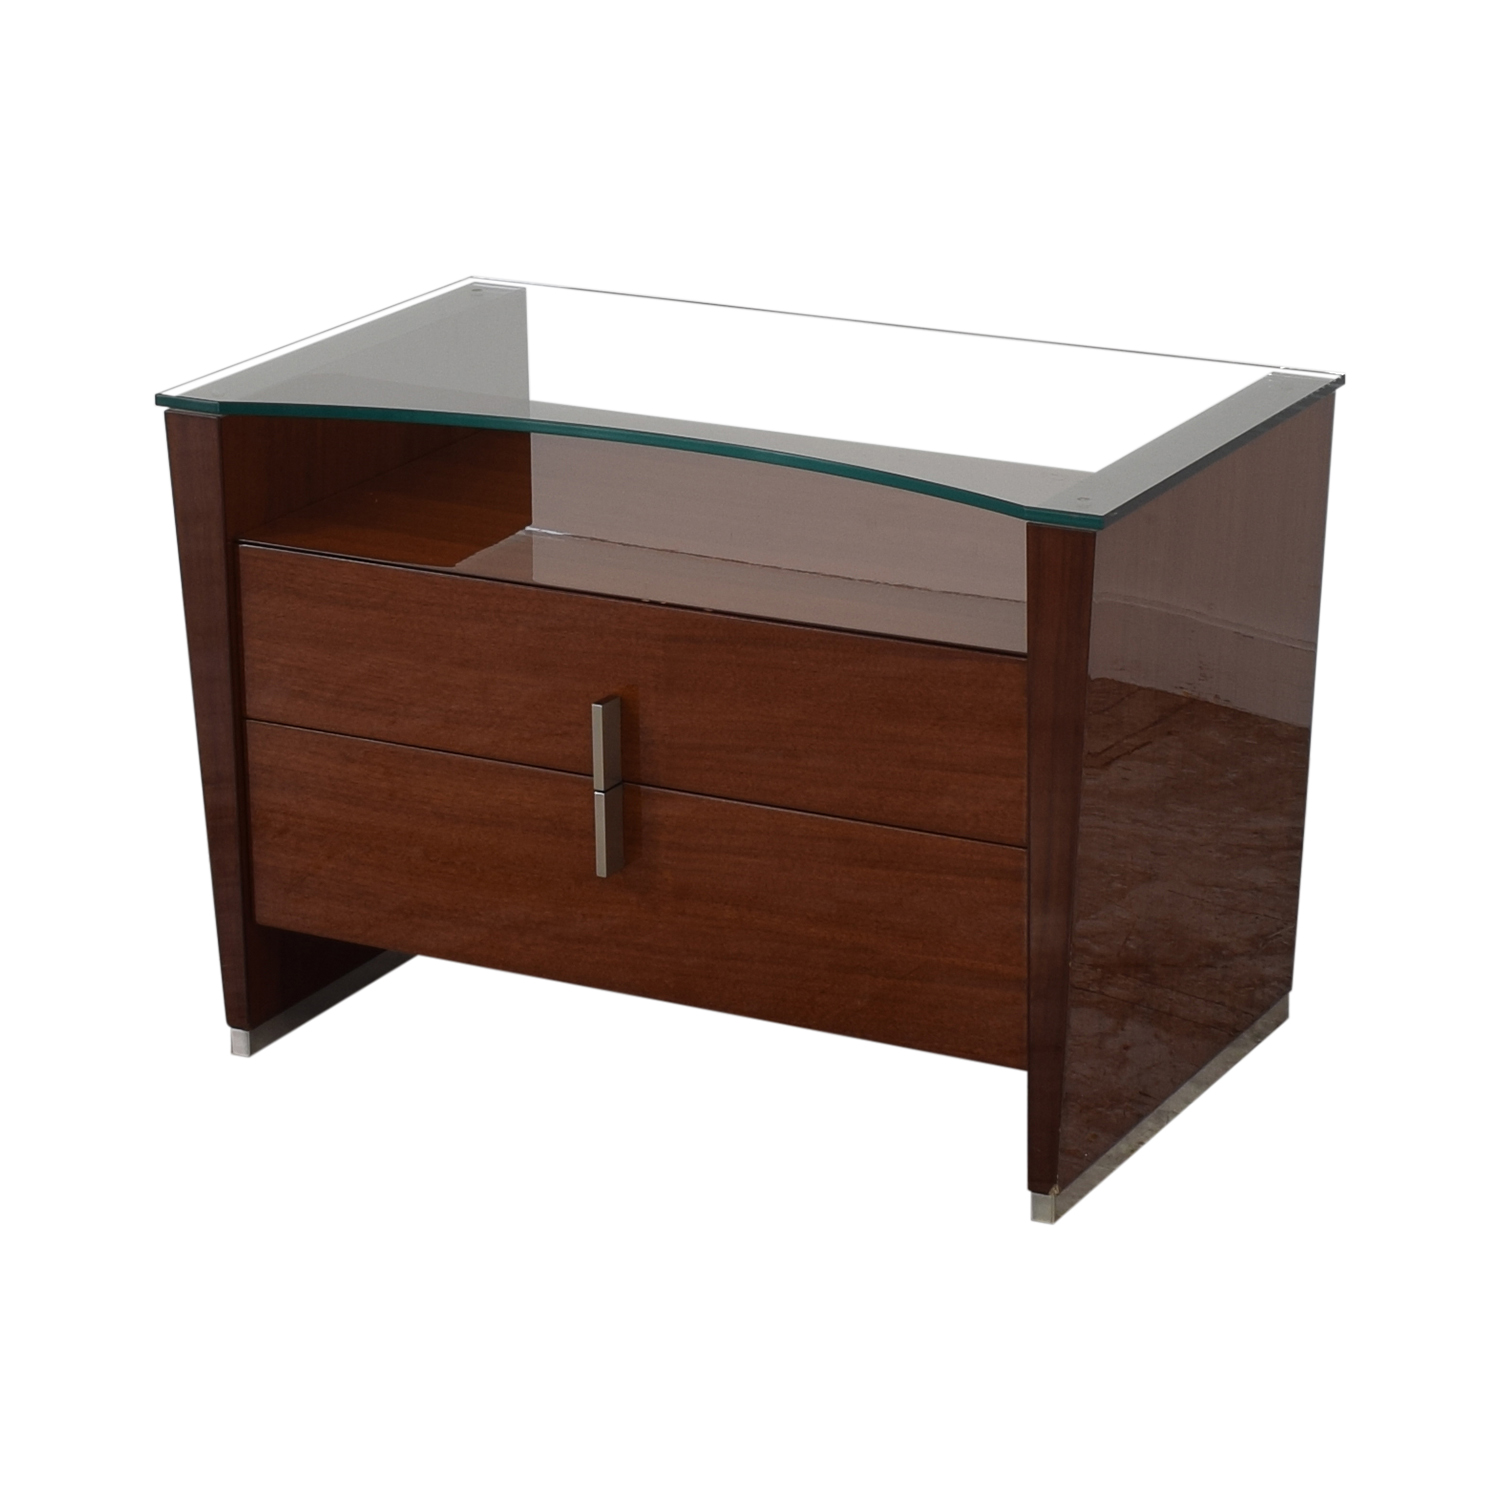 Dark Brown Nightstand with Transparent Shelf Tables